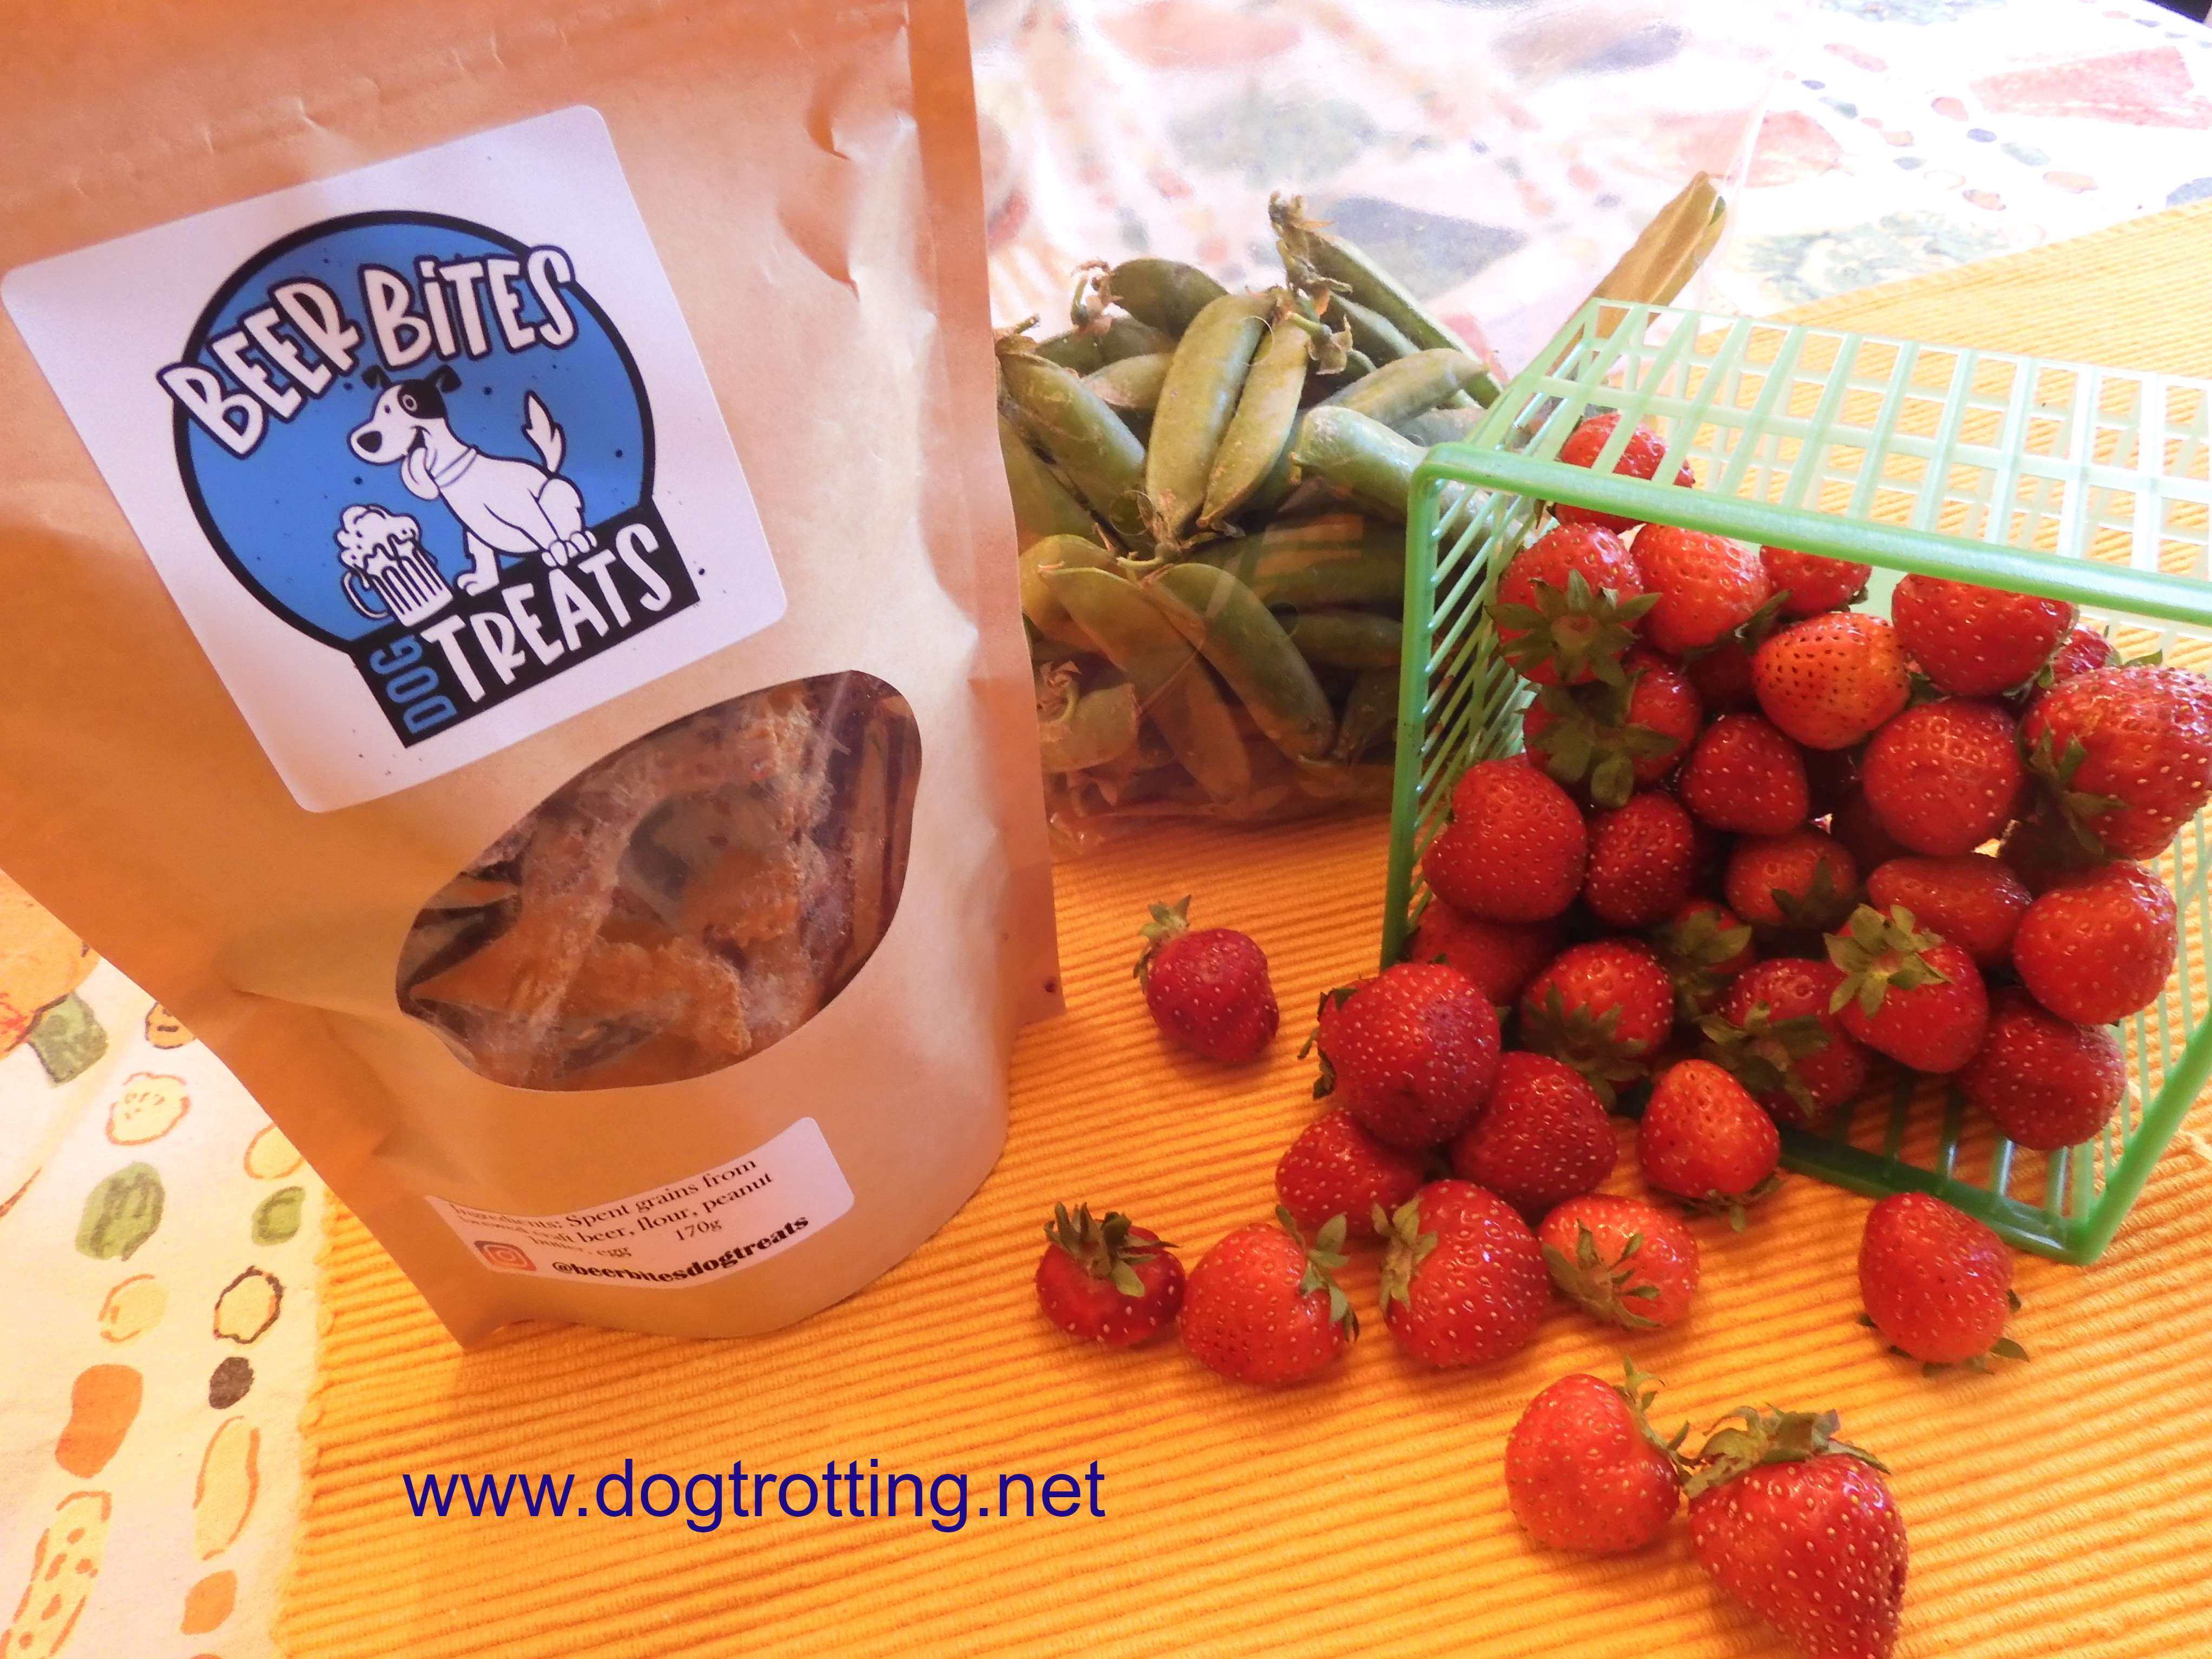 bag of Beer Bites dog treats, green peas and strawberries from farm stand in Selkirk, Ontario, Canada